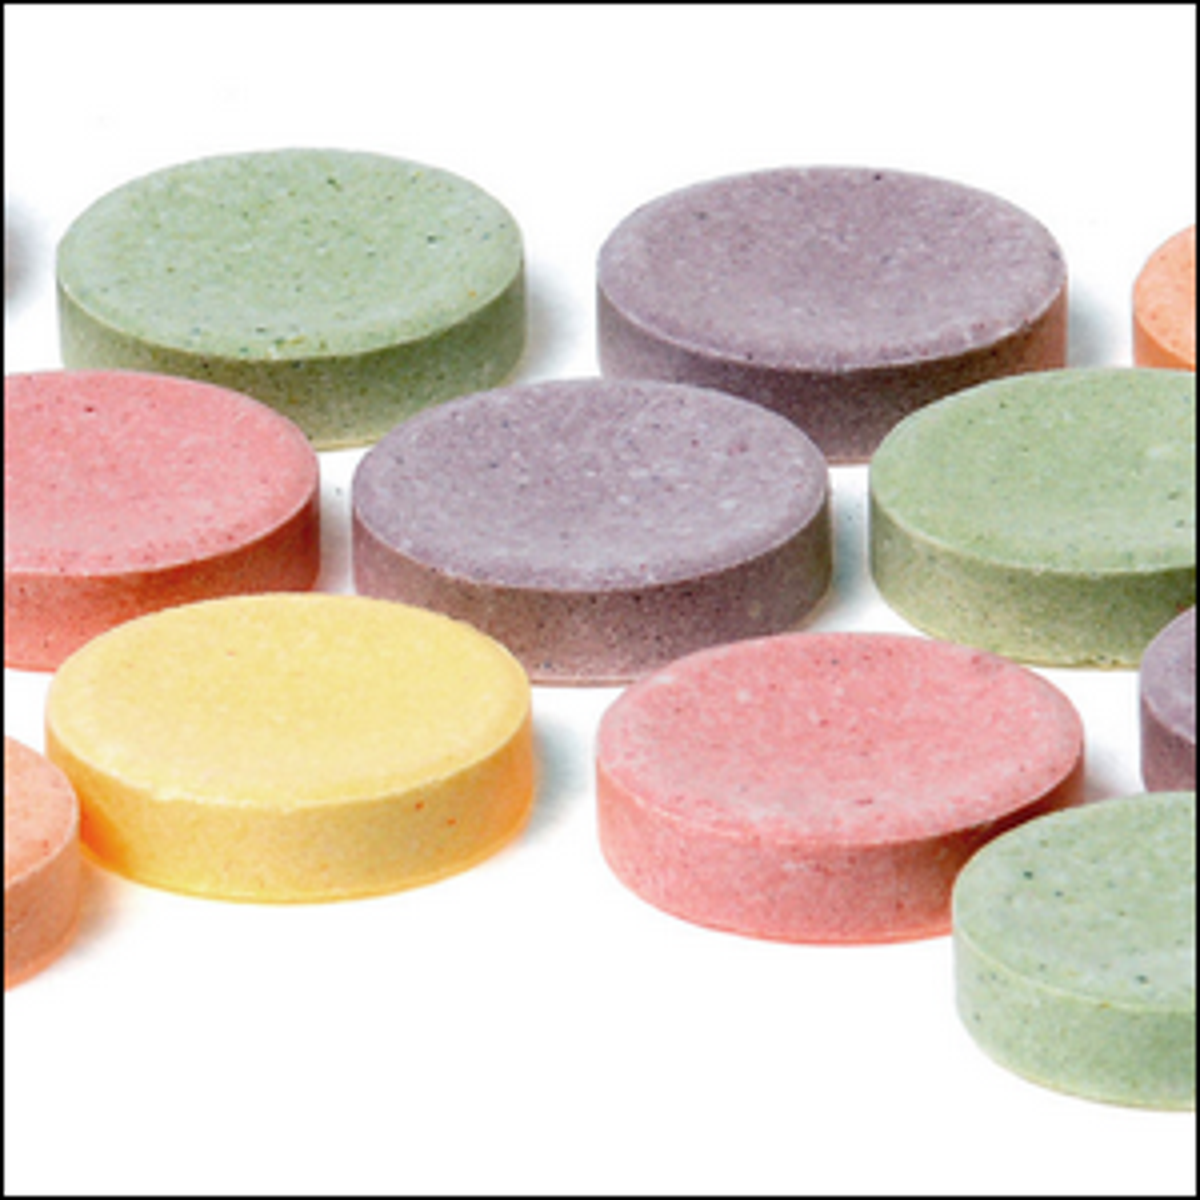 A group of giant-sized Smarties candy tablets.